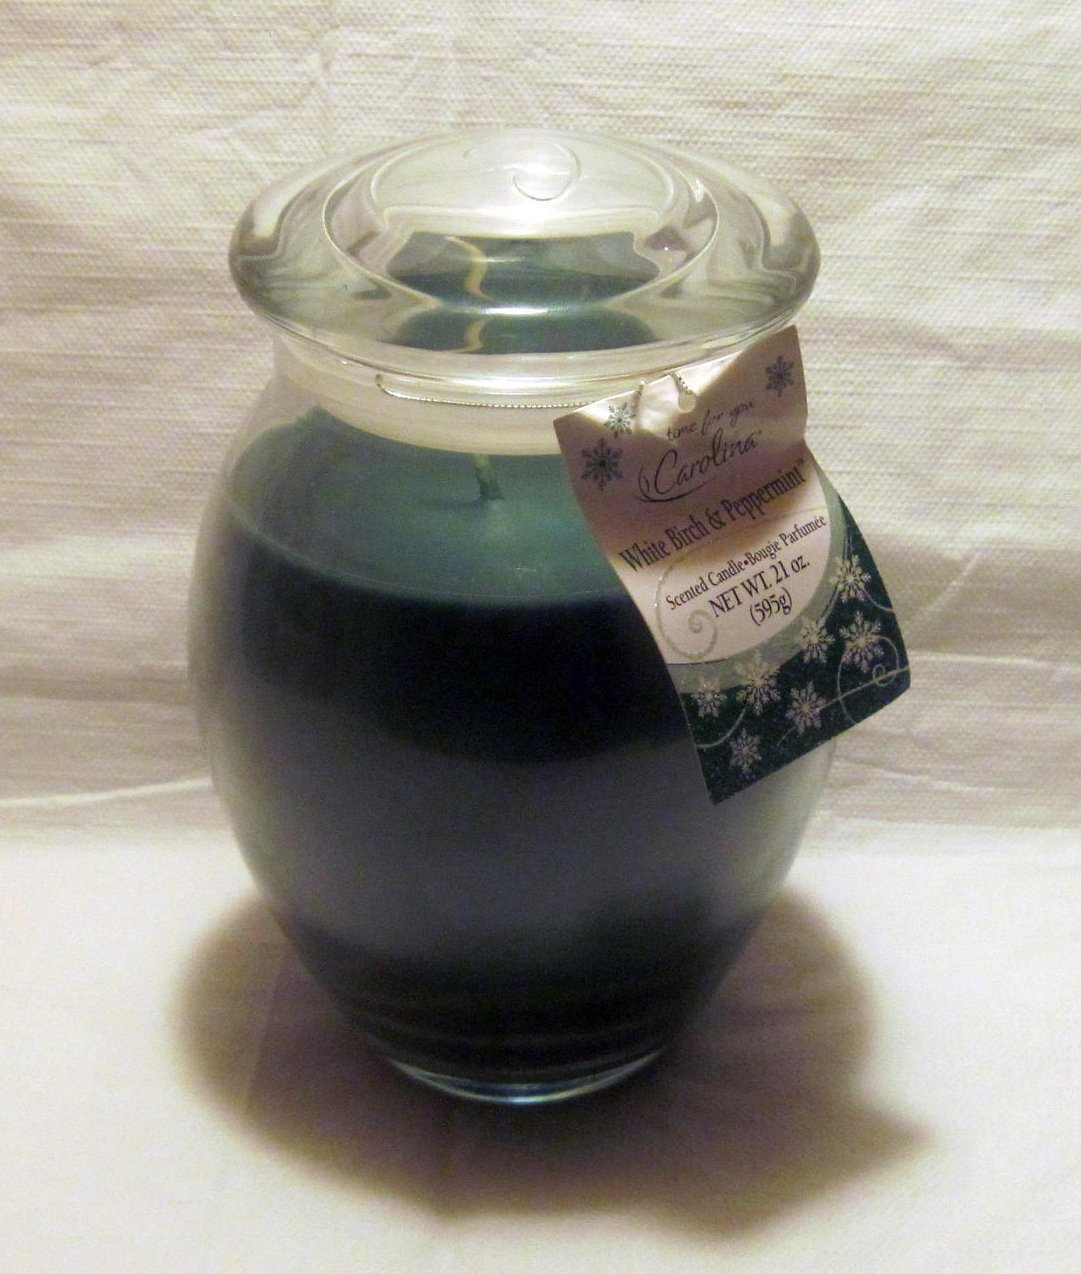 White Birch and Peppermint Carolina Jar Candle Green 21 oz